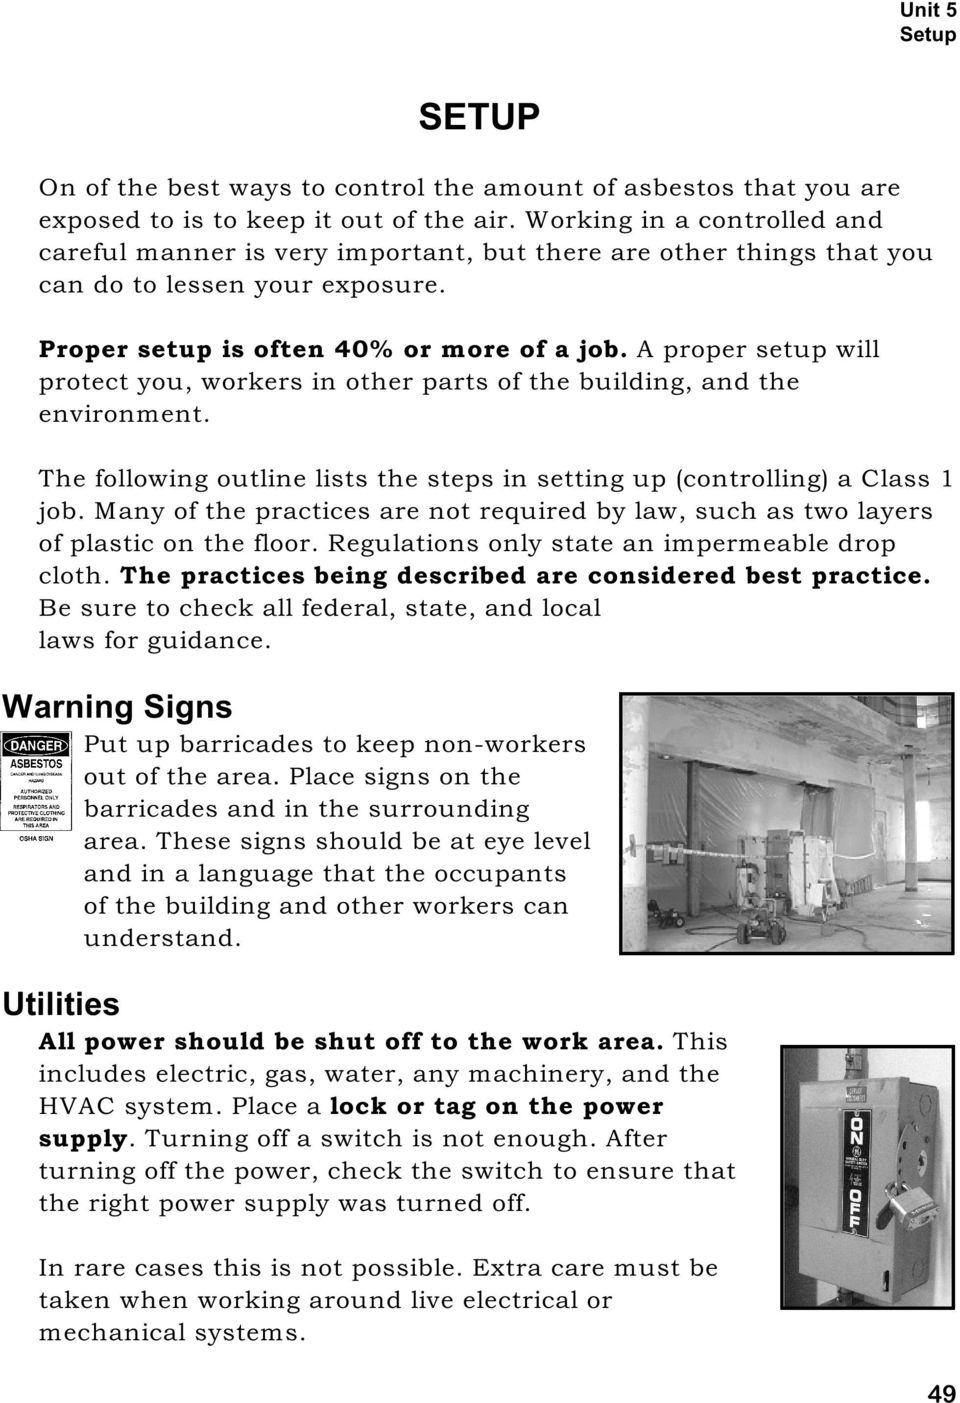 A proper setup will protect you, workers in other parts of the building, and the environment. The following outline lists the steps in setting up (controlling) a Class 1 job.